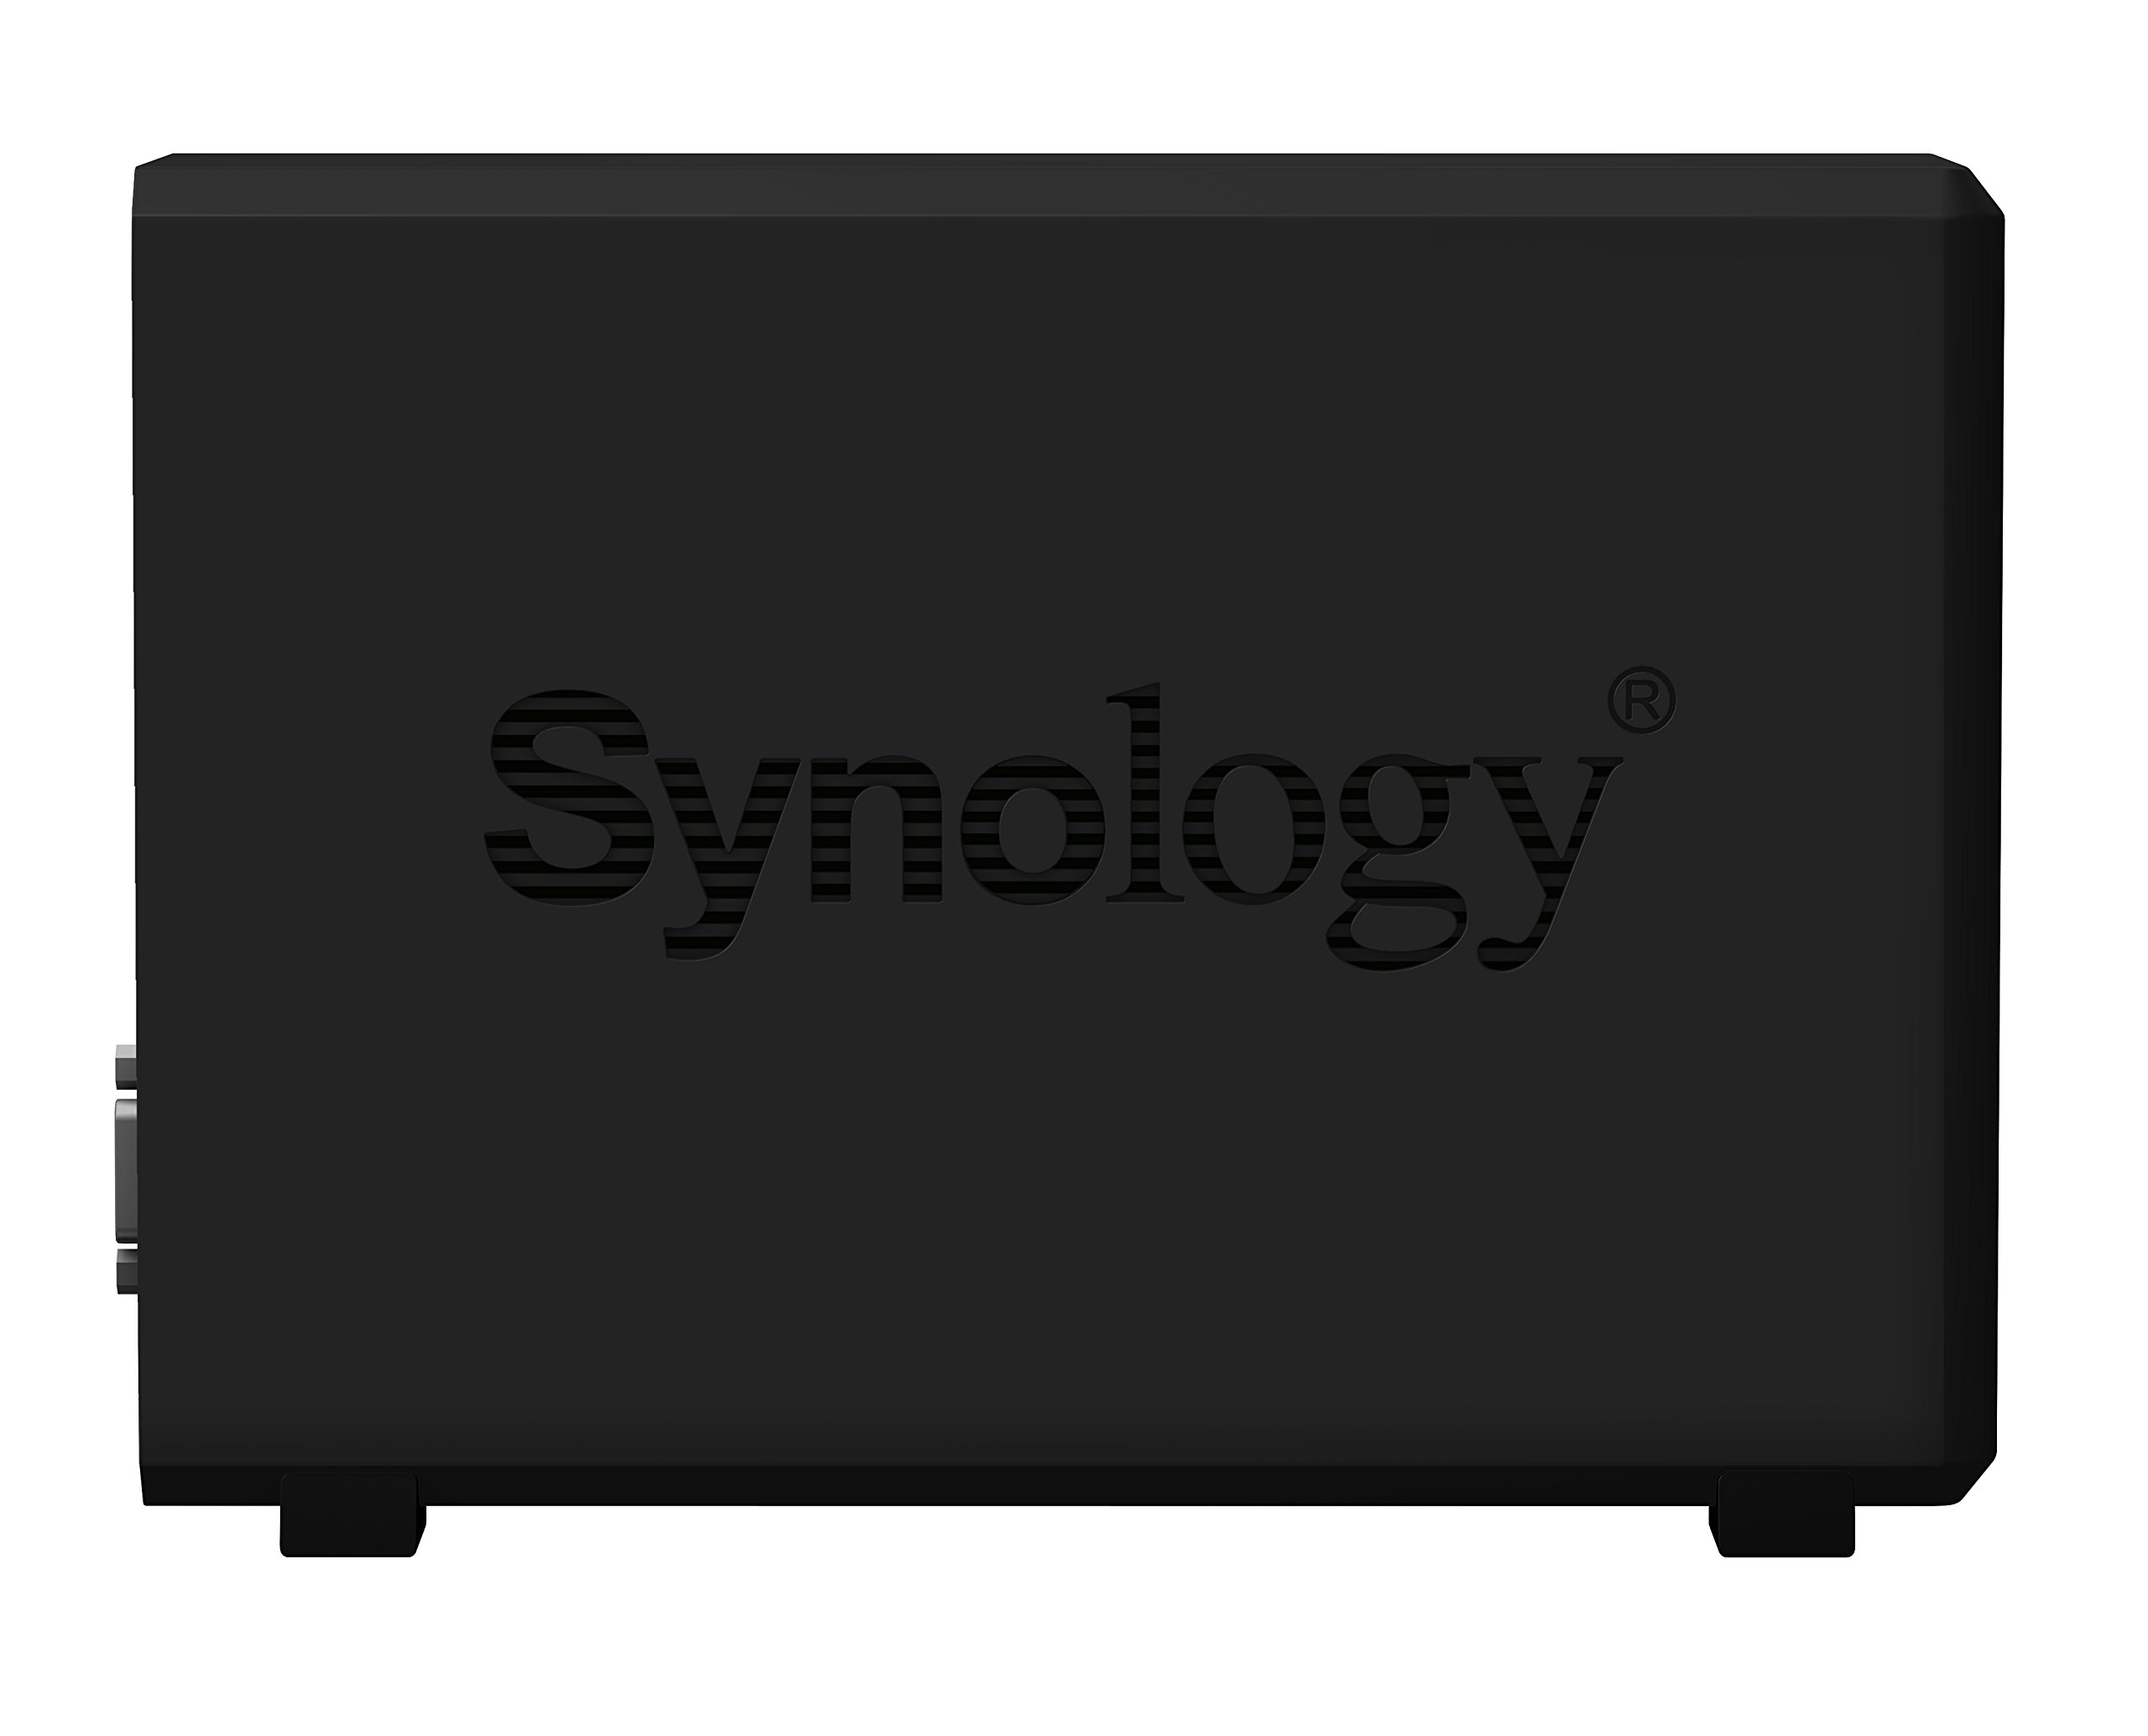 Synology 2 bay Network Video Recorder NVR1218 (Diskless) 4 Standalone surveillance solution with 1080p HDMI output Point of Sale (POS) system support combines business transaction records with surveillance recordings 4 free camera licenses included, supports up to 12 cameras